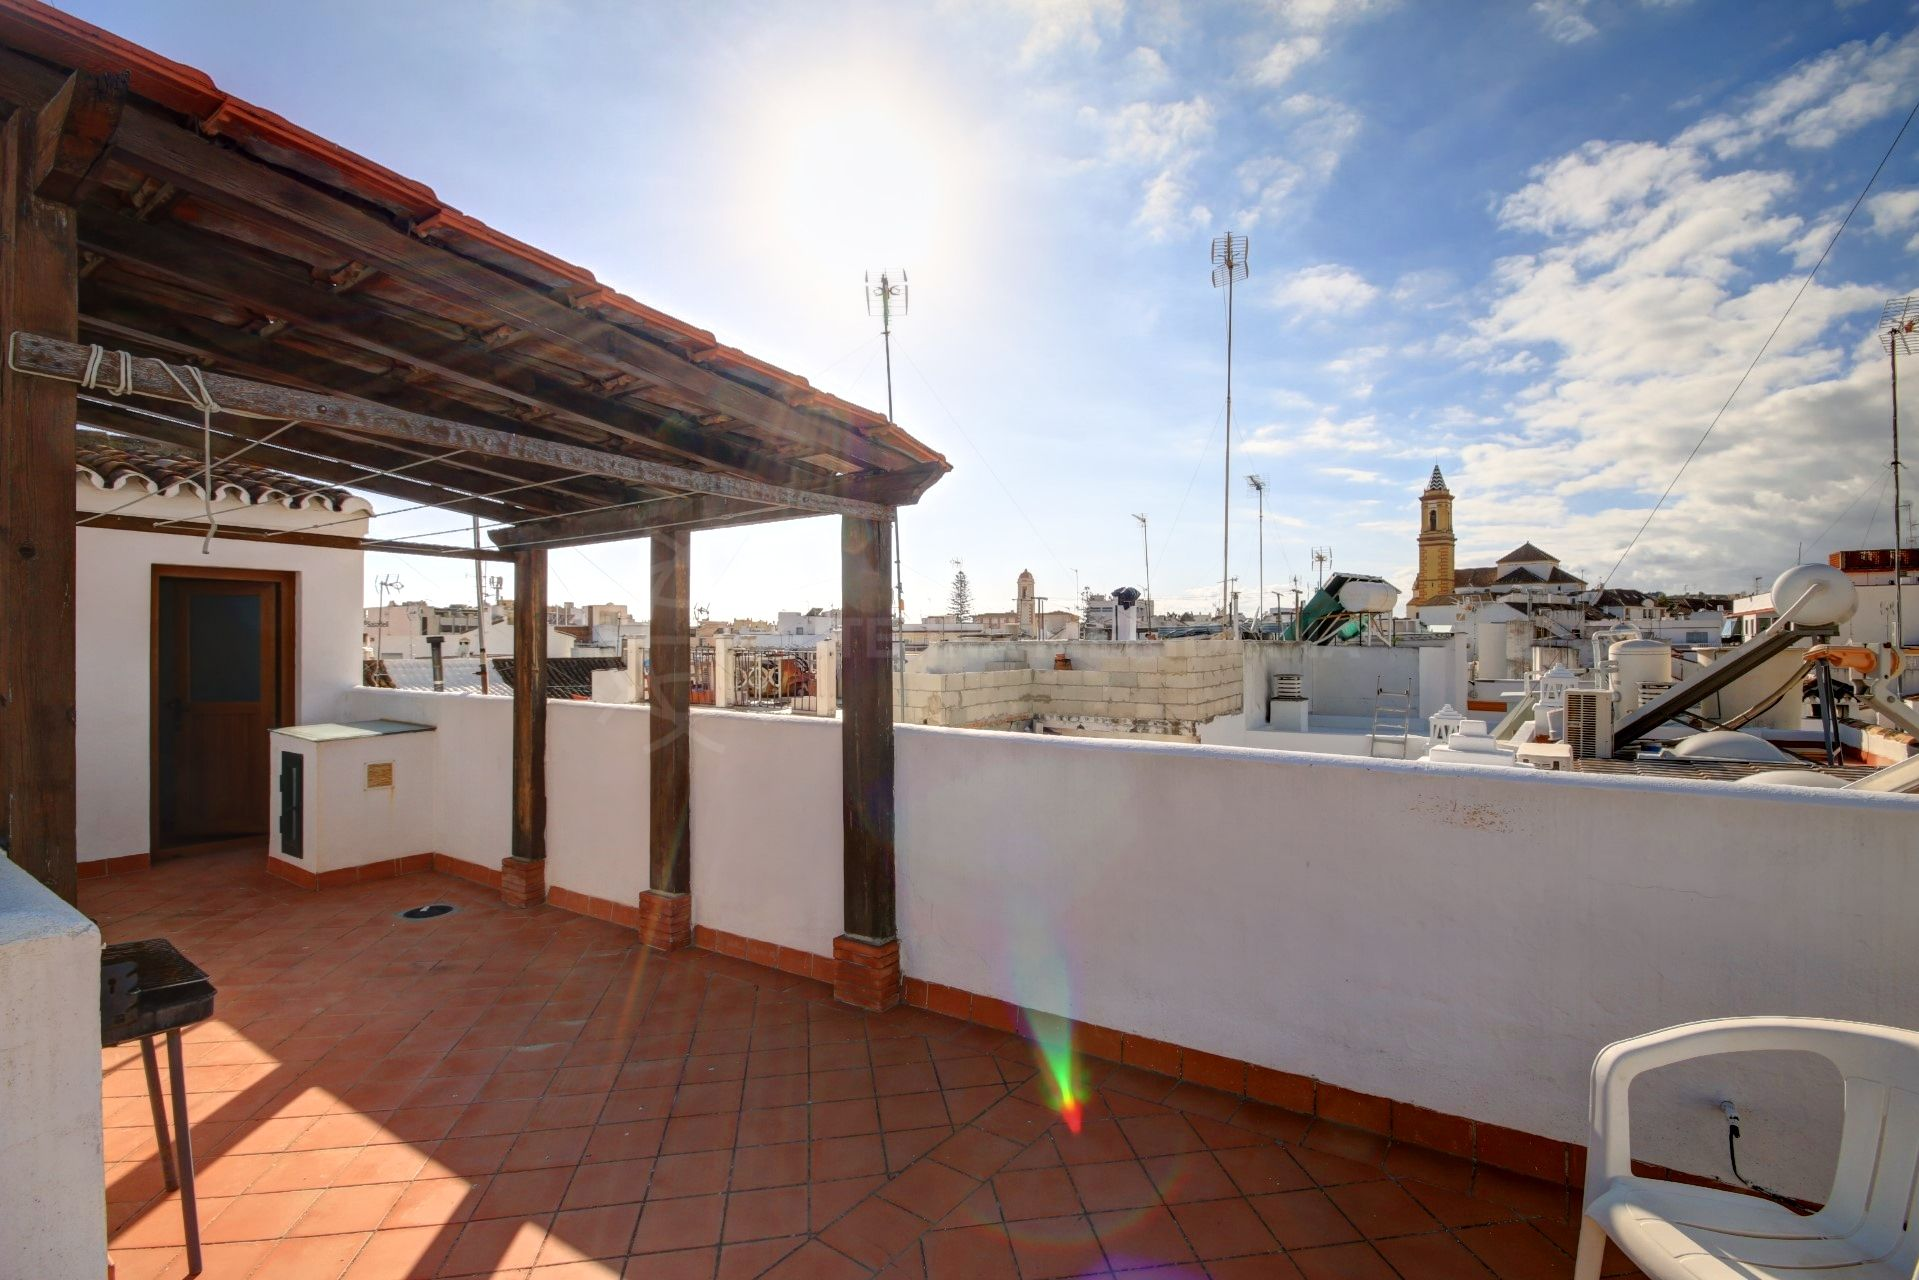 Large Townhouse For Sale With Garage In Estepona Old Town Center, Divided  Into Separate Apartments Ideal For Rentals.